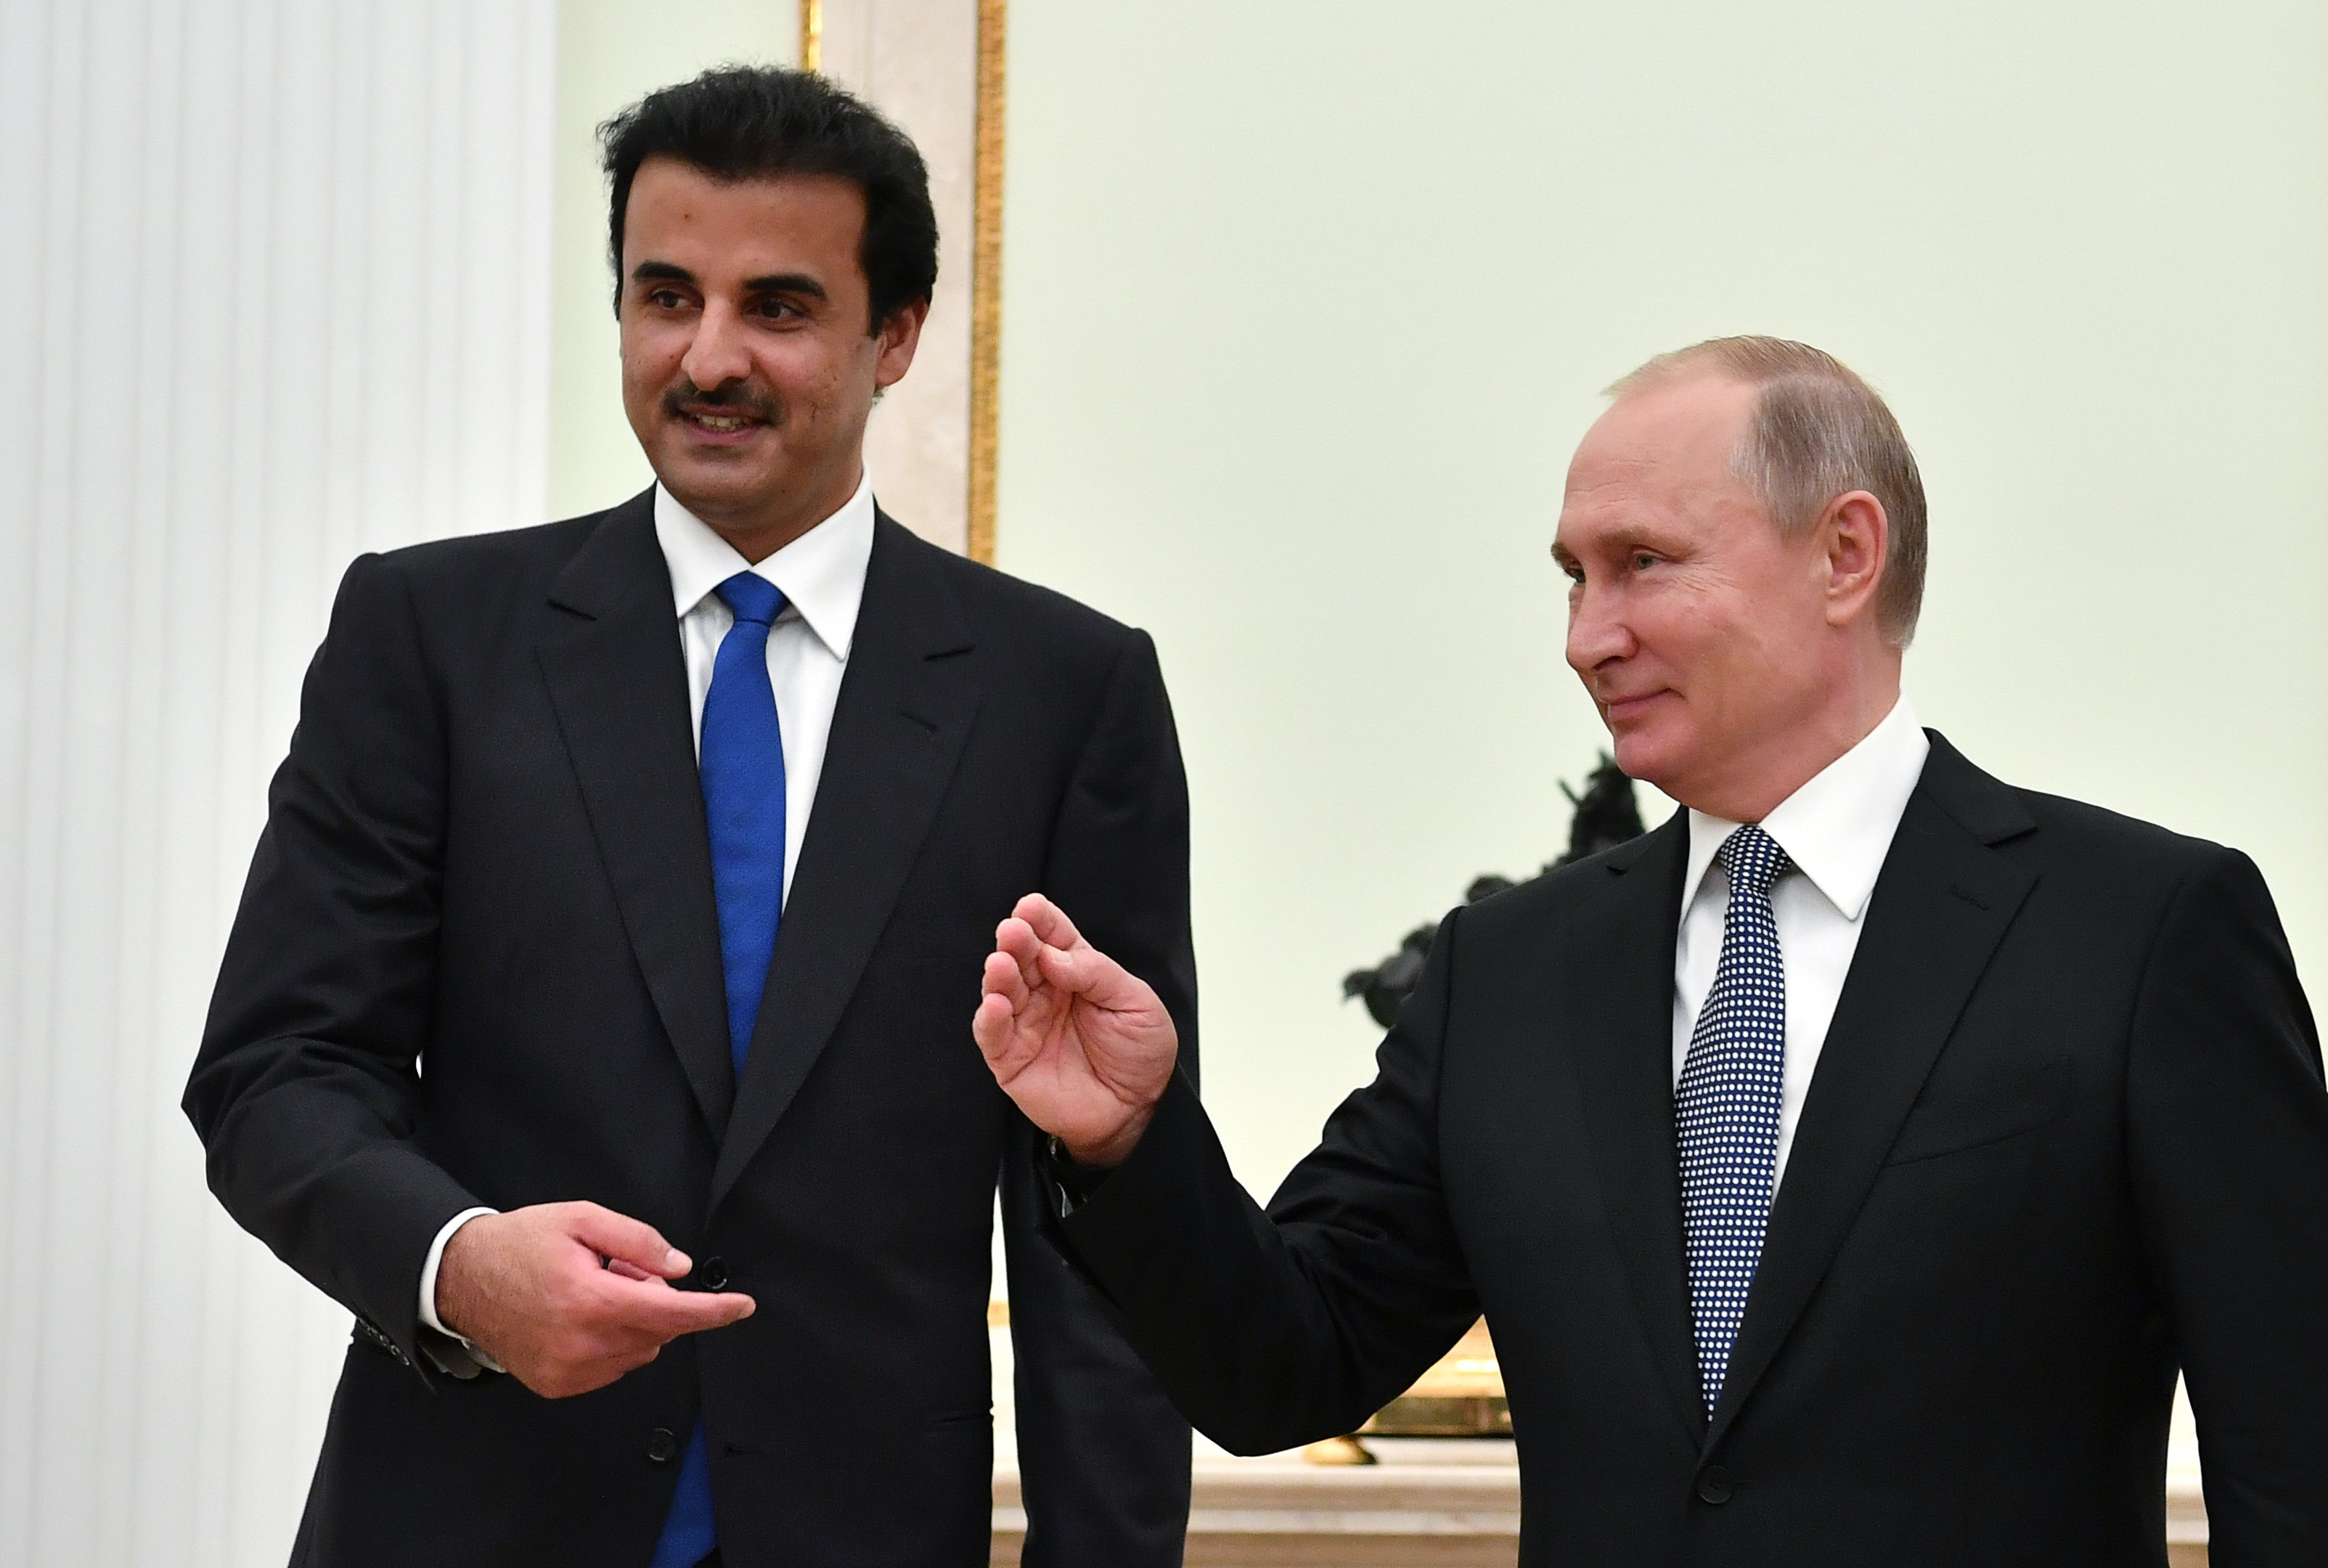 Russian President Vladimir Putin and Qatar Emir Sheikh Tamim bin Hamad al-Thani attend a meeting at the Kremlin in Moscow, Russia July 15, 2018. Yuri Kadobnov/Pool via REUTERS